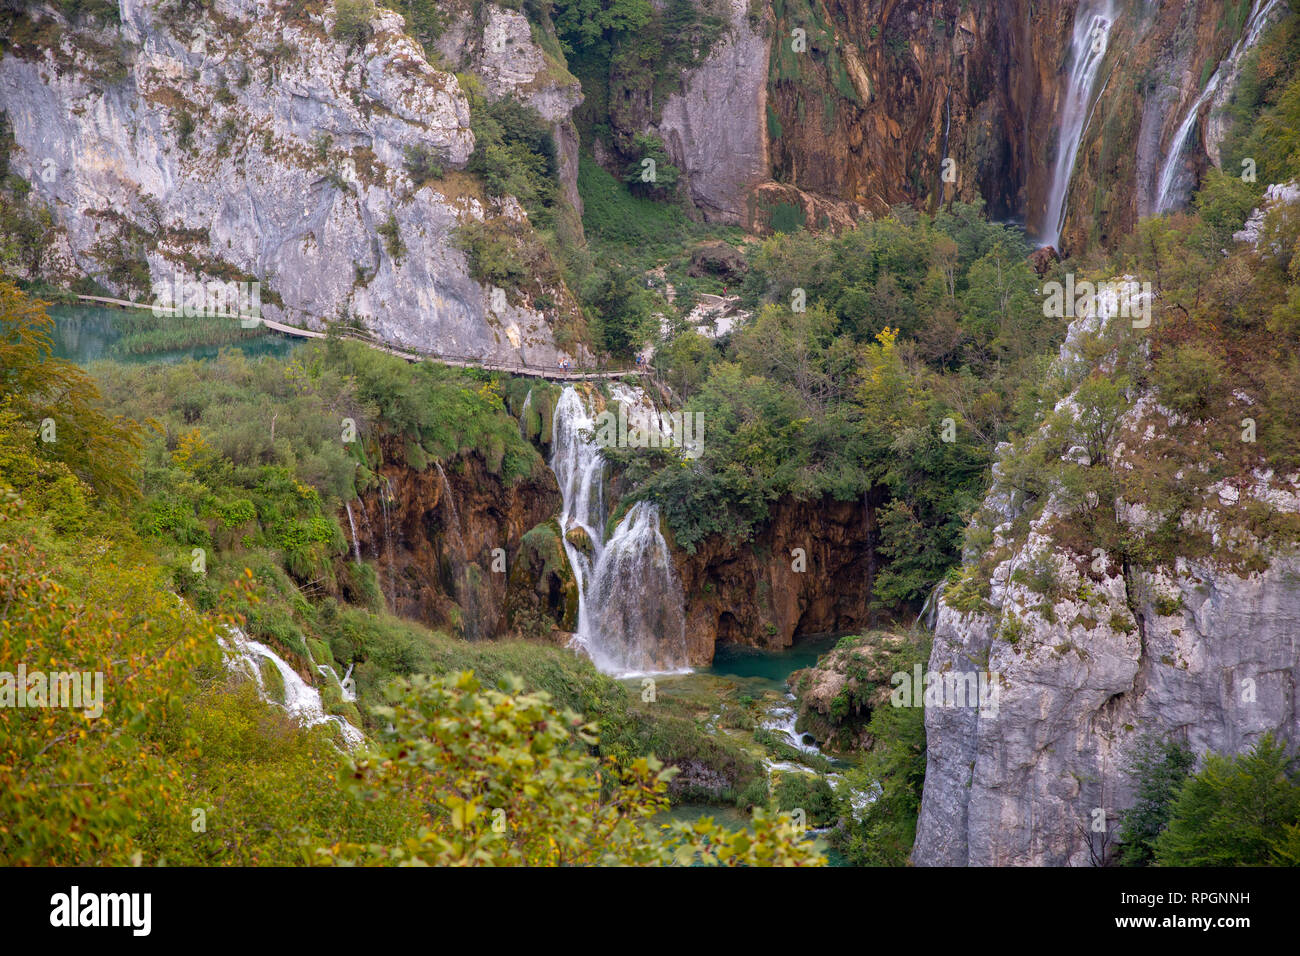 Plitvice lakes & waterfalls  scenery in Croatia's first national park. - Stock Image